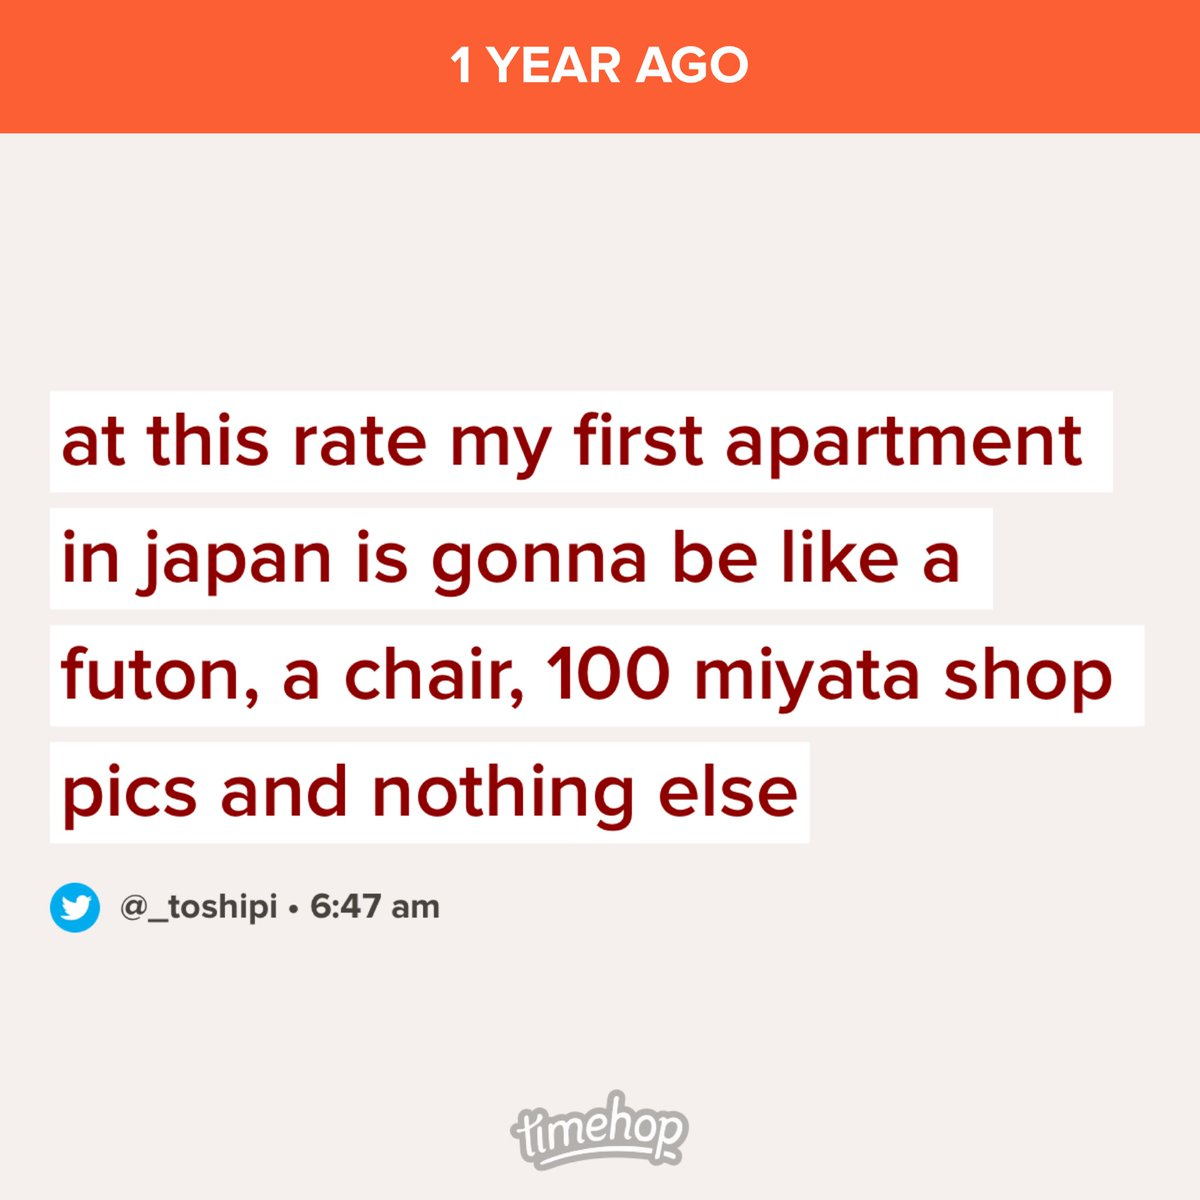 my prediction was wrong but not That wrong (my apartment is 90% johnnys)...